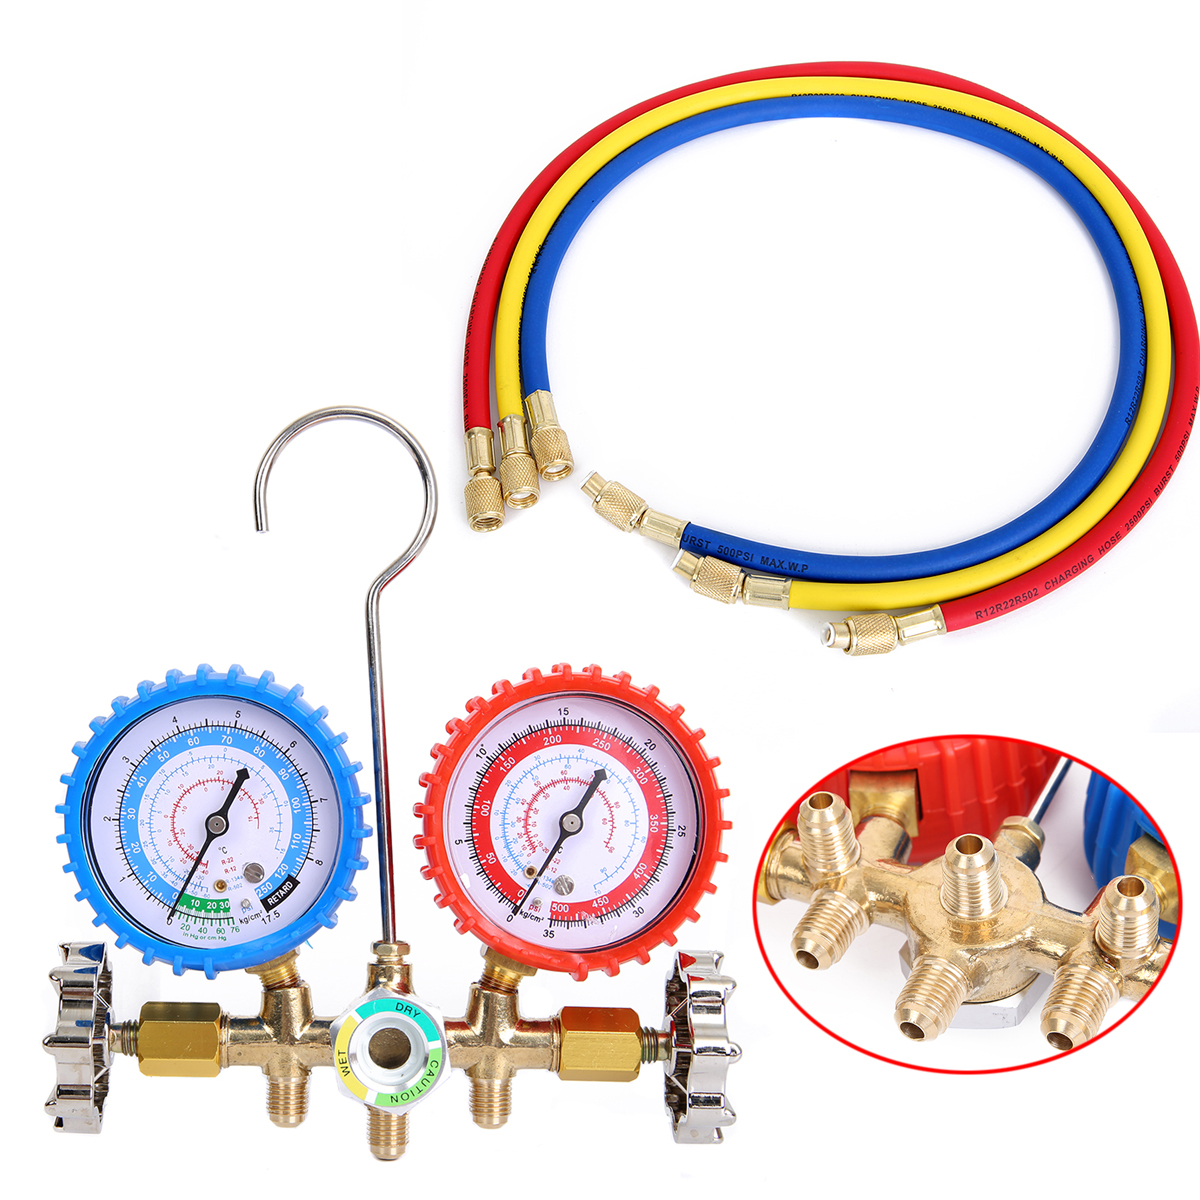 0-10Mpa Manifold Gauge Set Air Condition Refrigeration Charging Manifold Gauge Repair Tool For R134A R12 R22 R404z